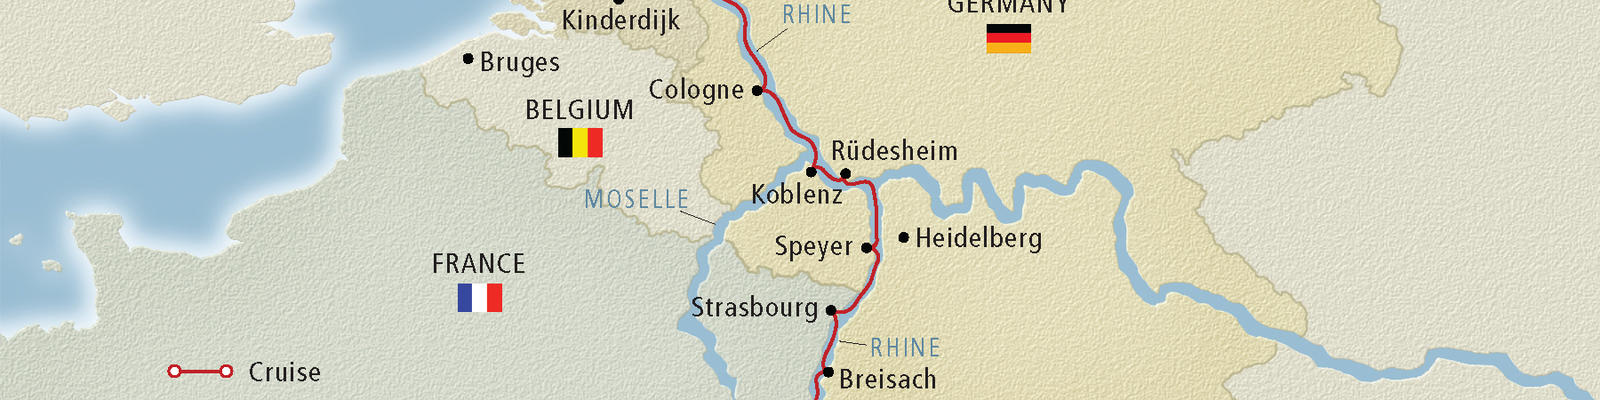 Map Of Rhine River Rhine River Cruise Map   Cruise Critic